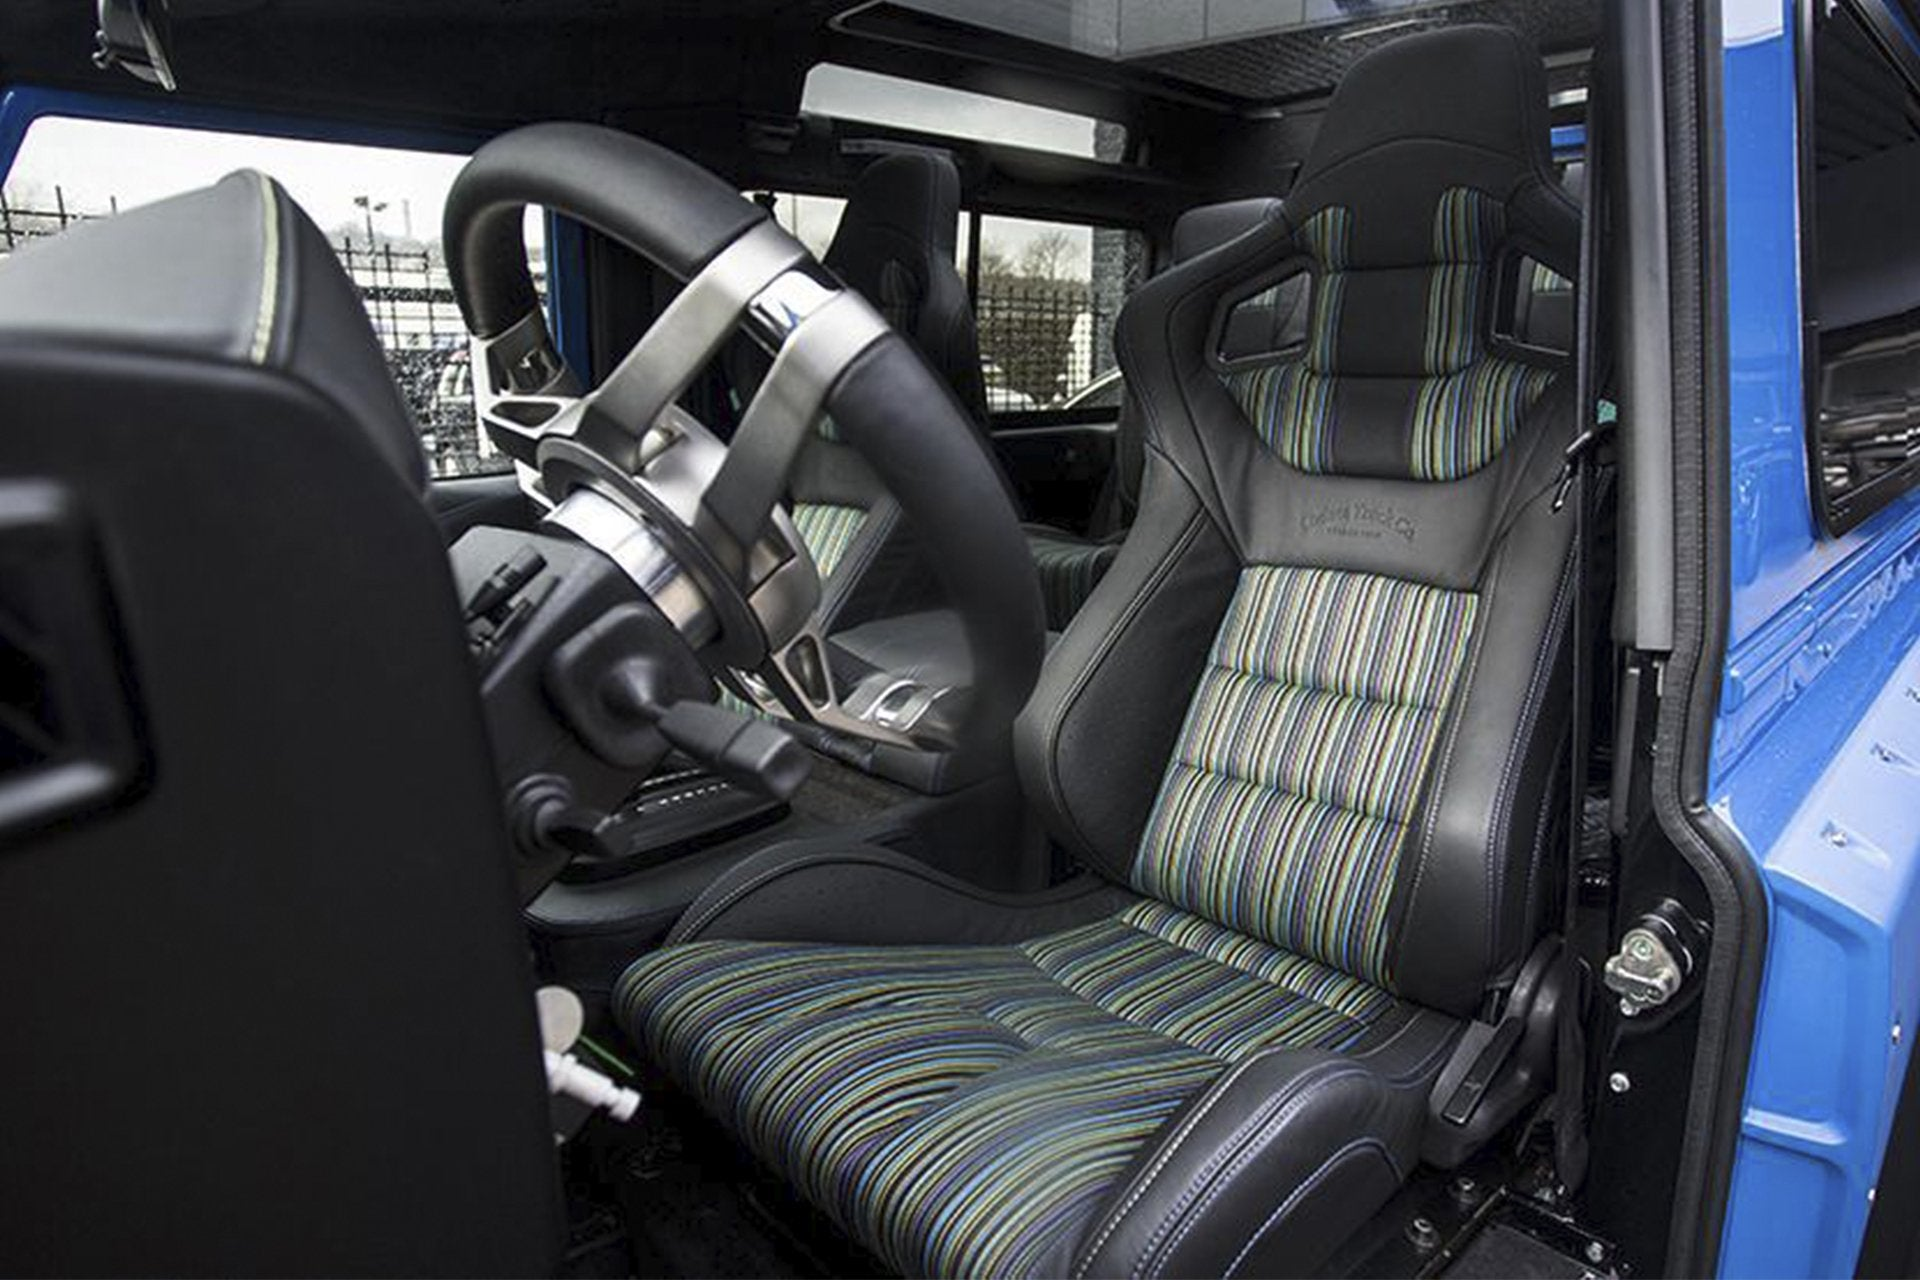 Land Rover Defender 90 (1991-2016) Leather Interior by Chelsea Truck Company - Image 1451